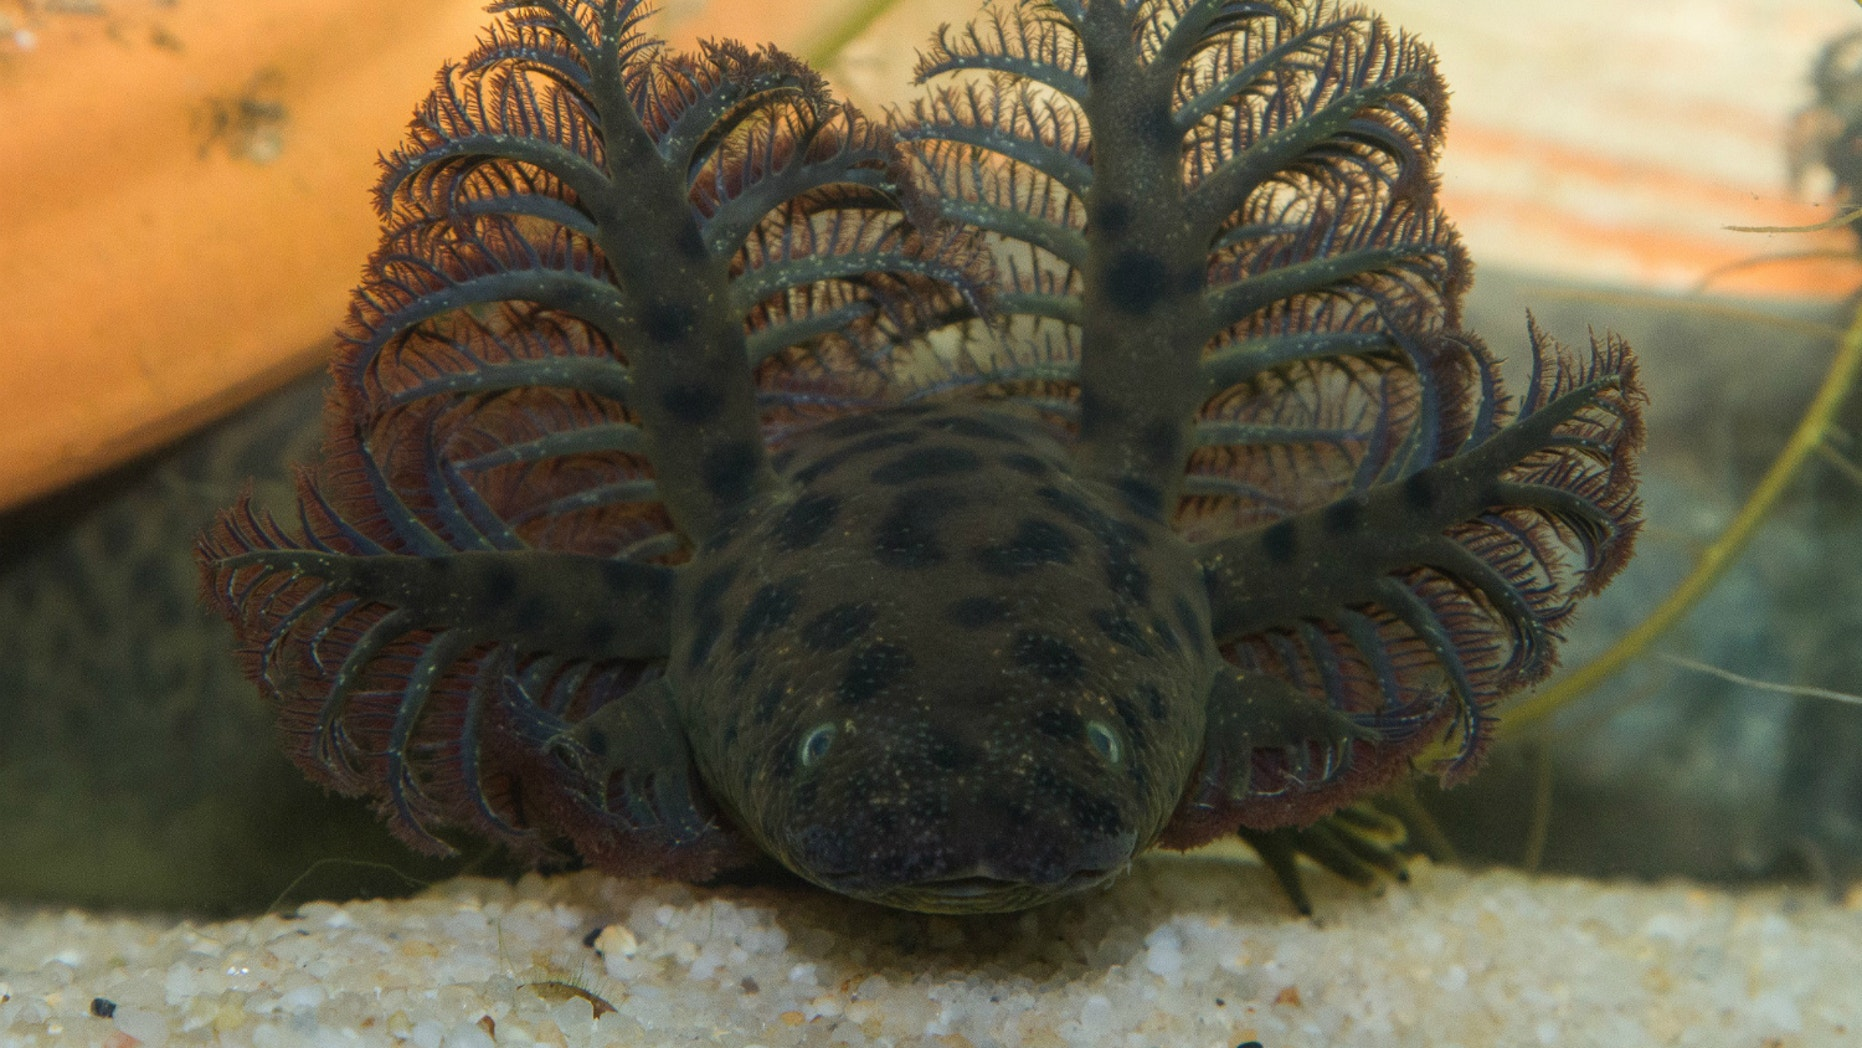 Newly described aquatic salamander <i>Siren reticulata</i> — reticulated siren — has a spotted, eel-like body and no hind limbs.